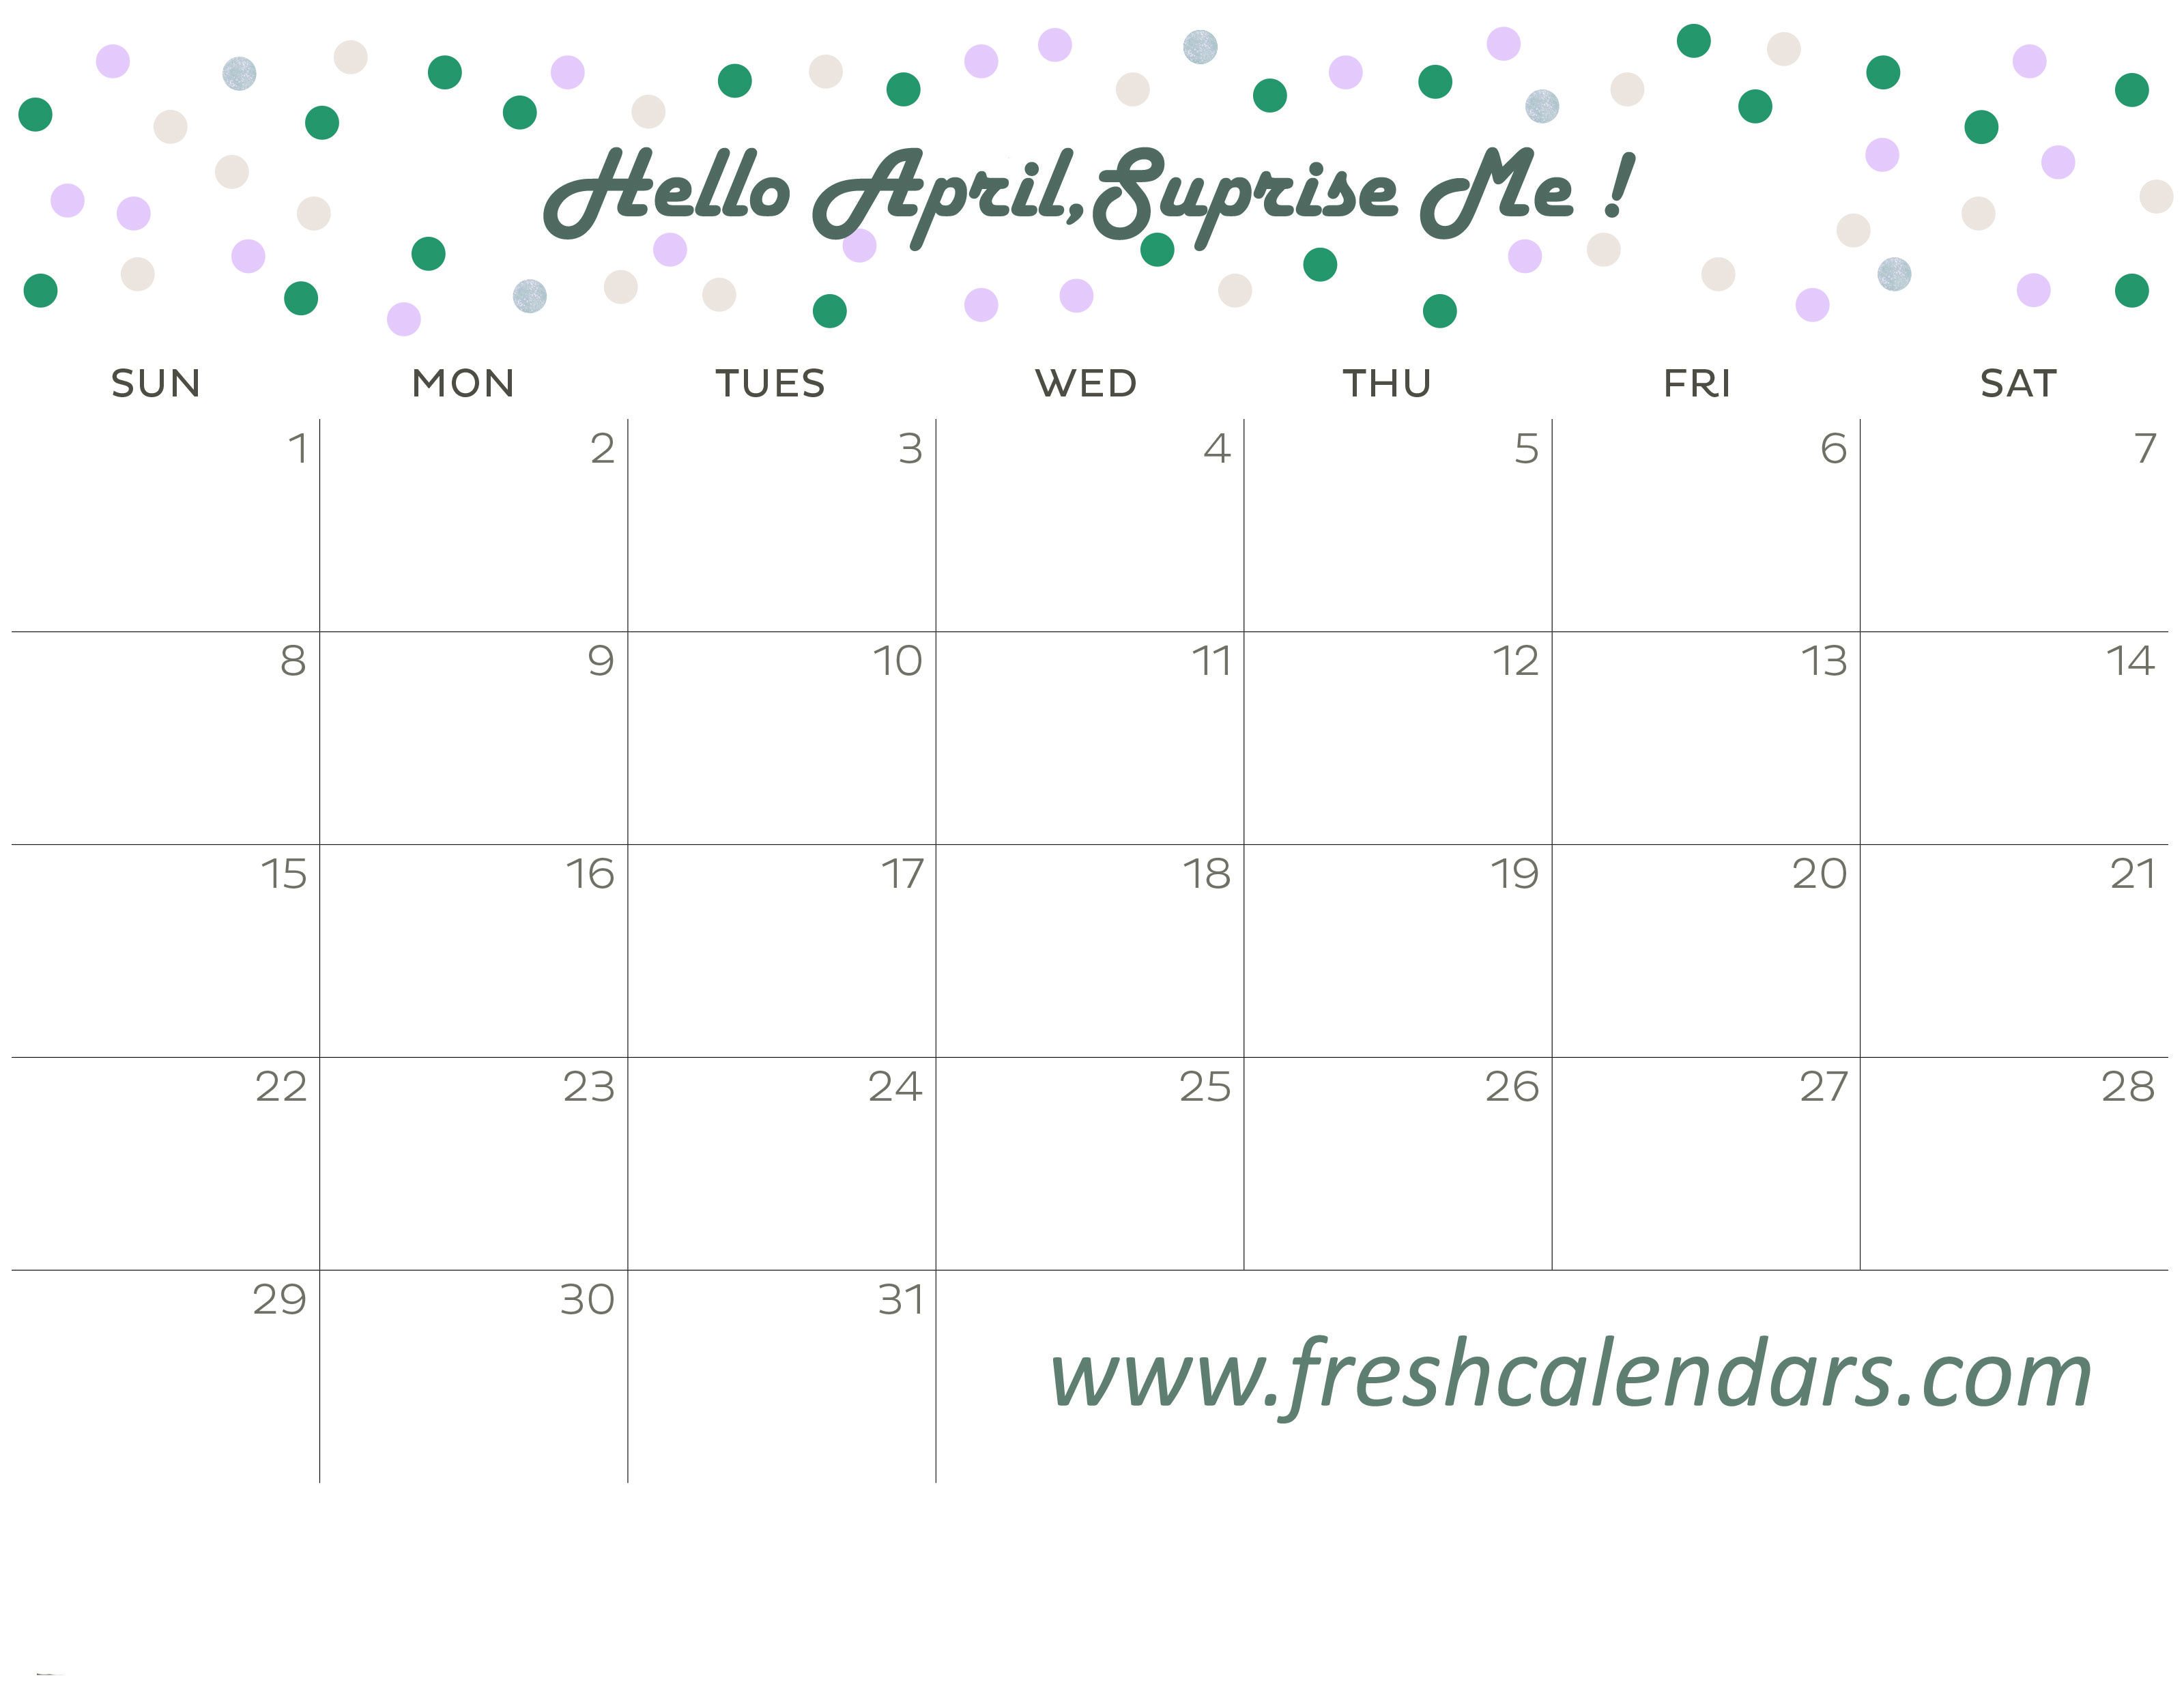 April Calendar 2018 (Hello Message)